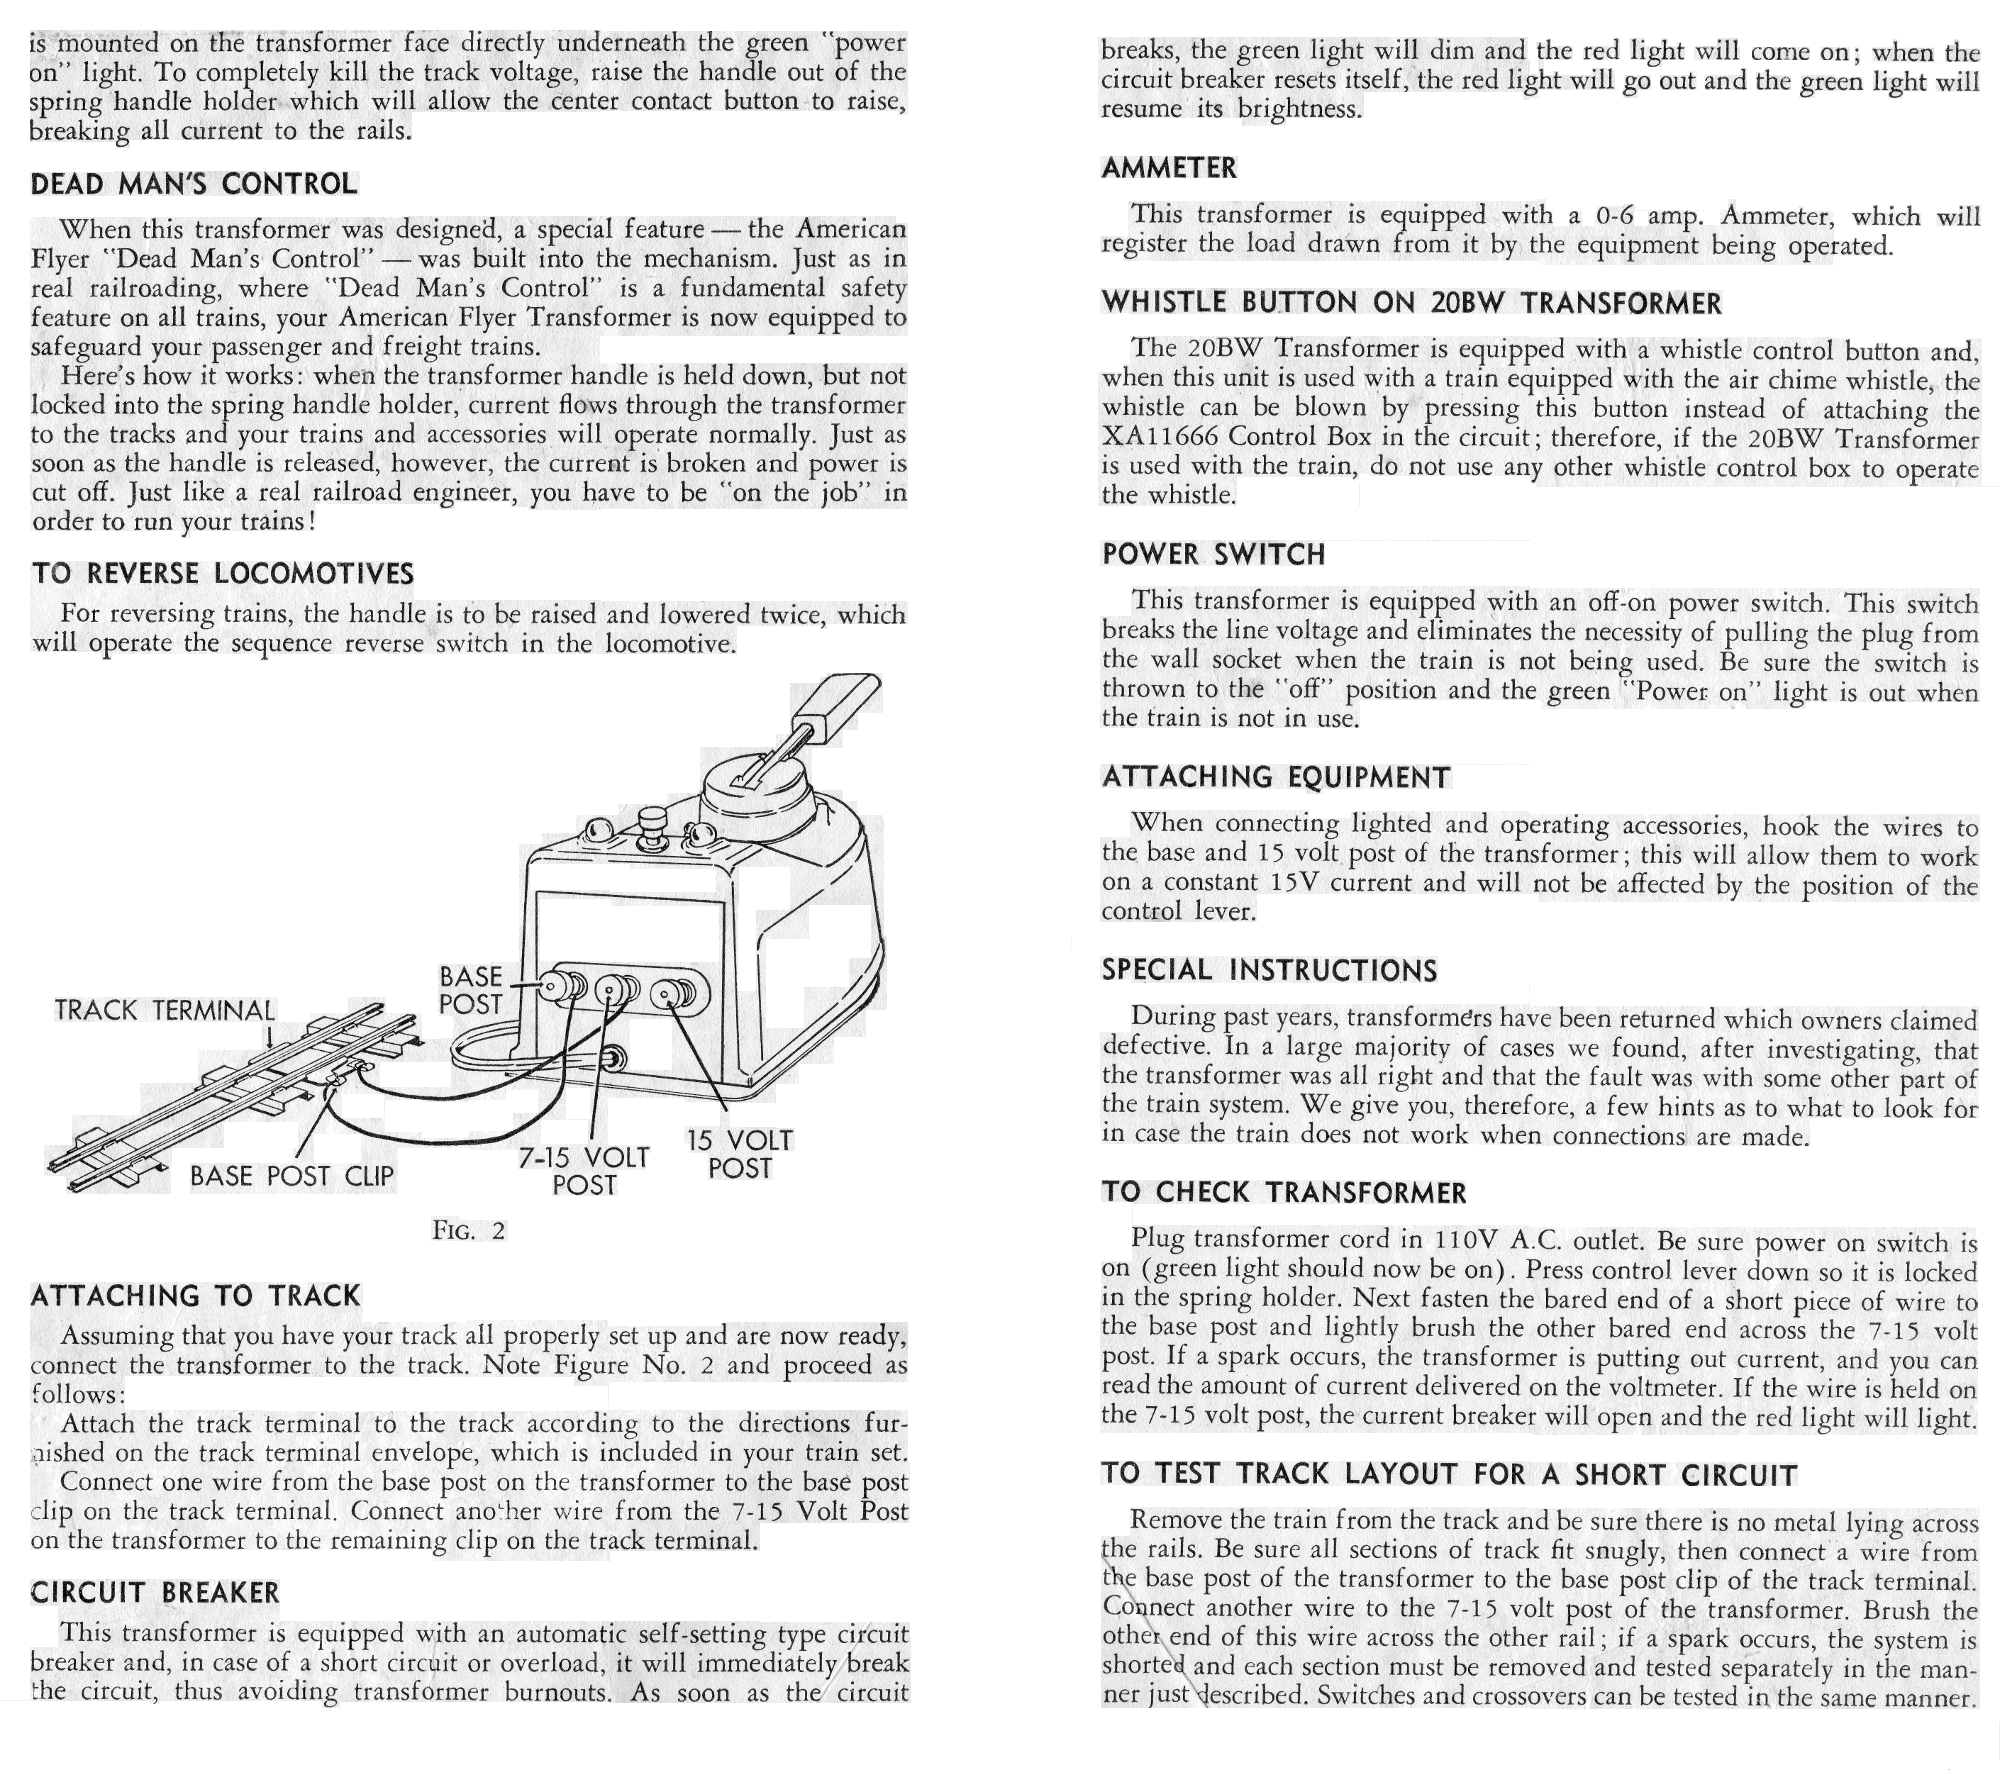 Instructions for No. 19B and 20 BW Transformers - Page 2